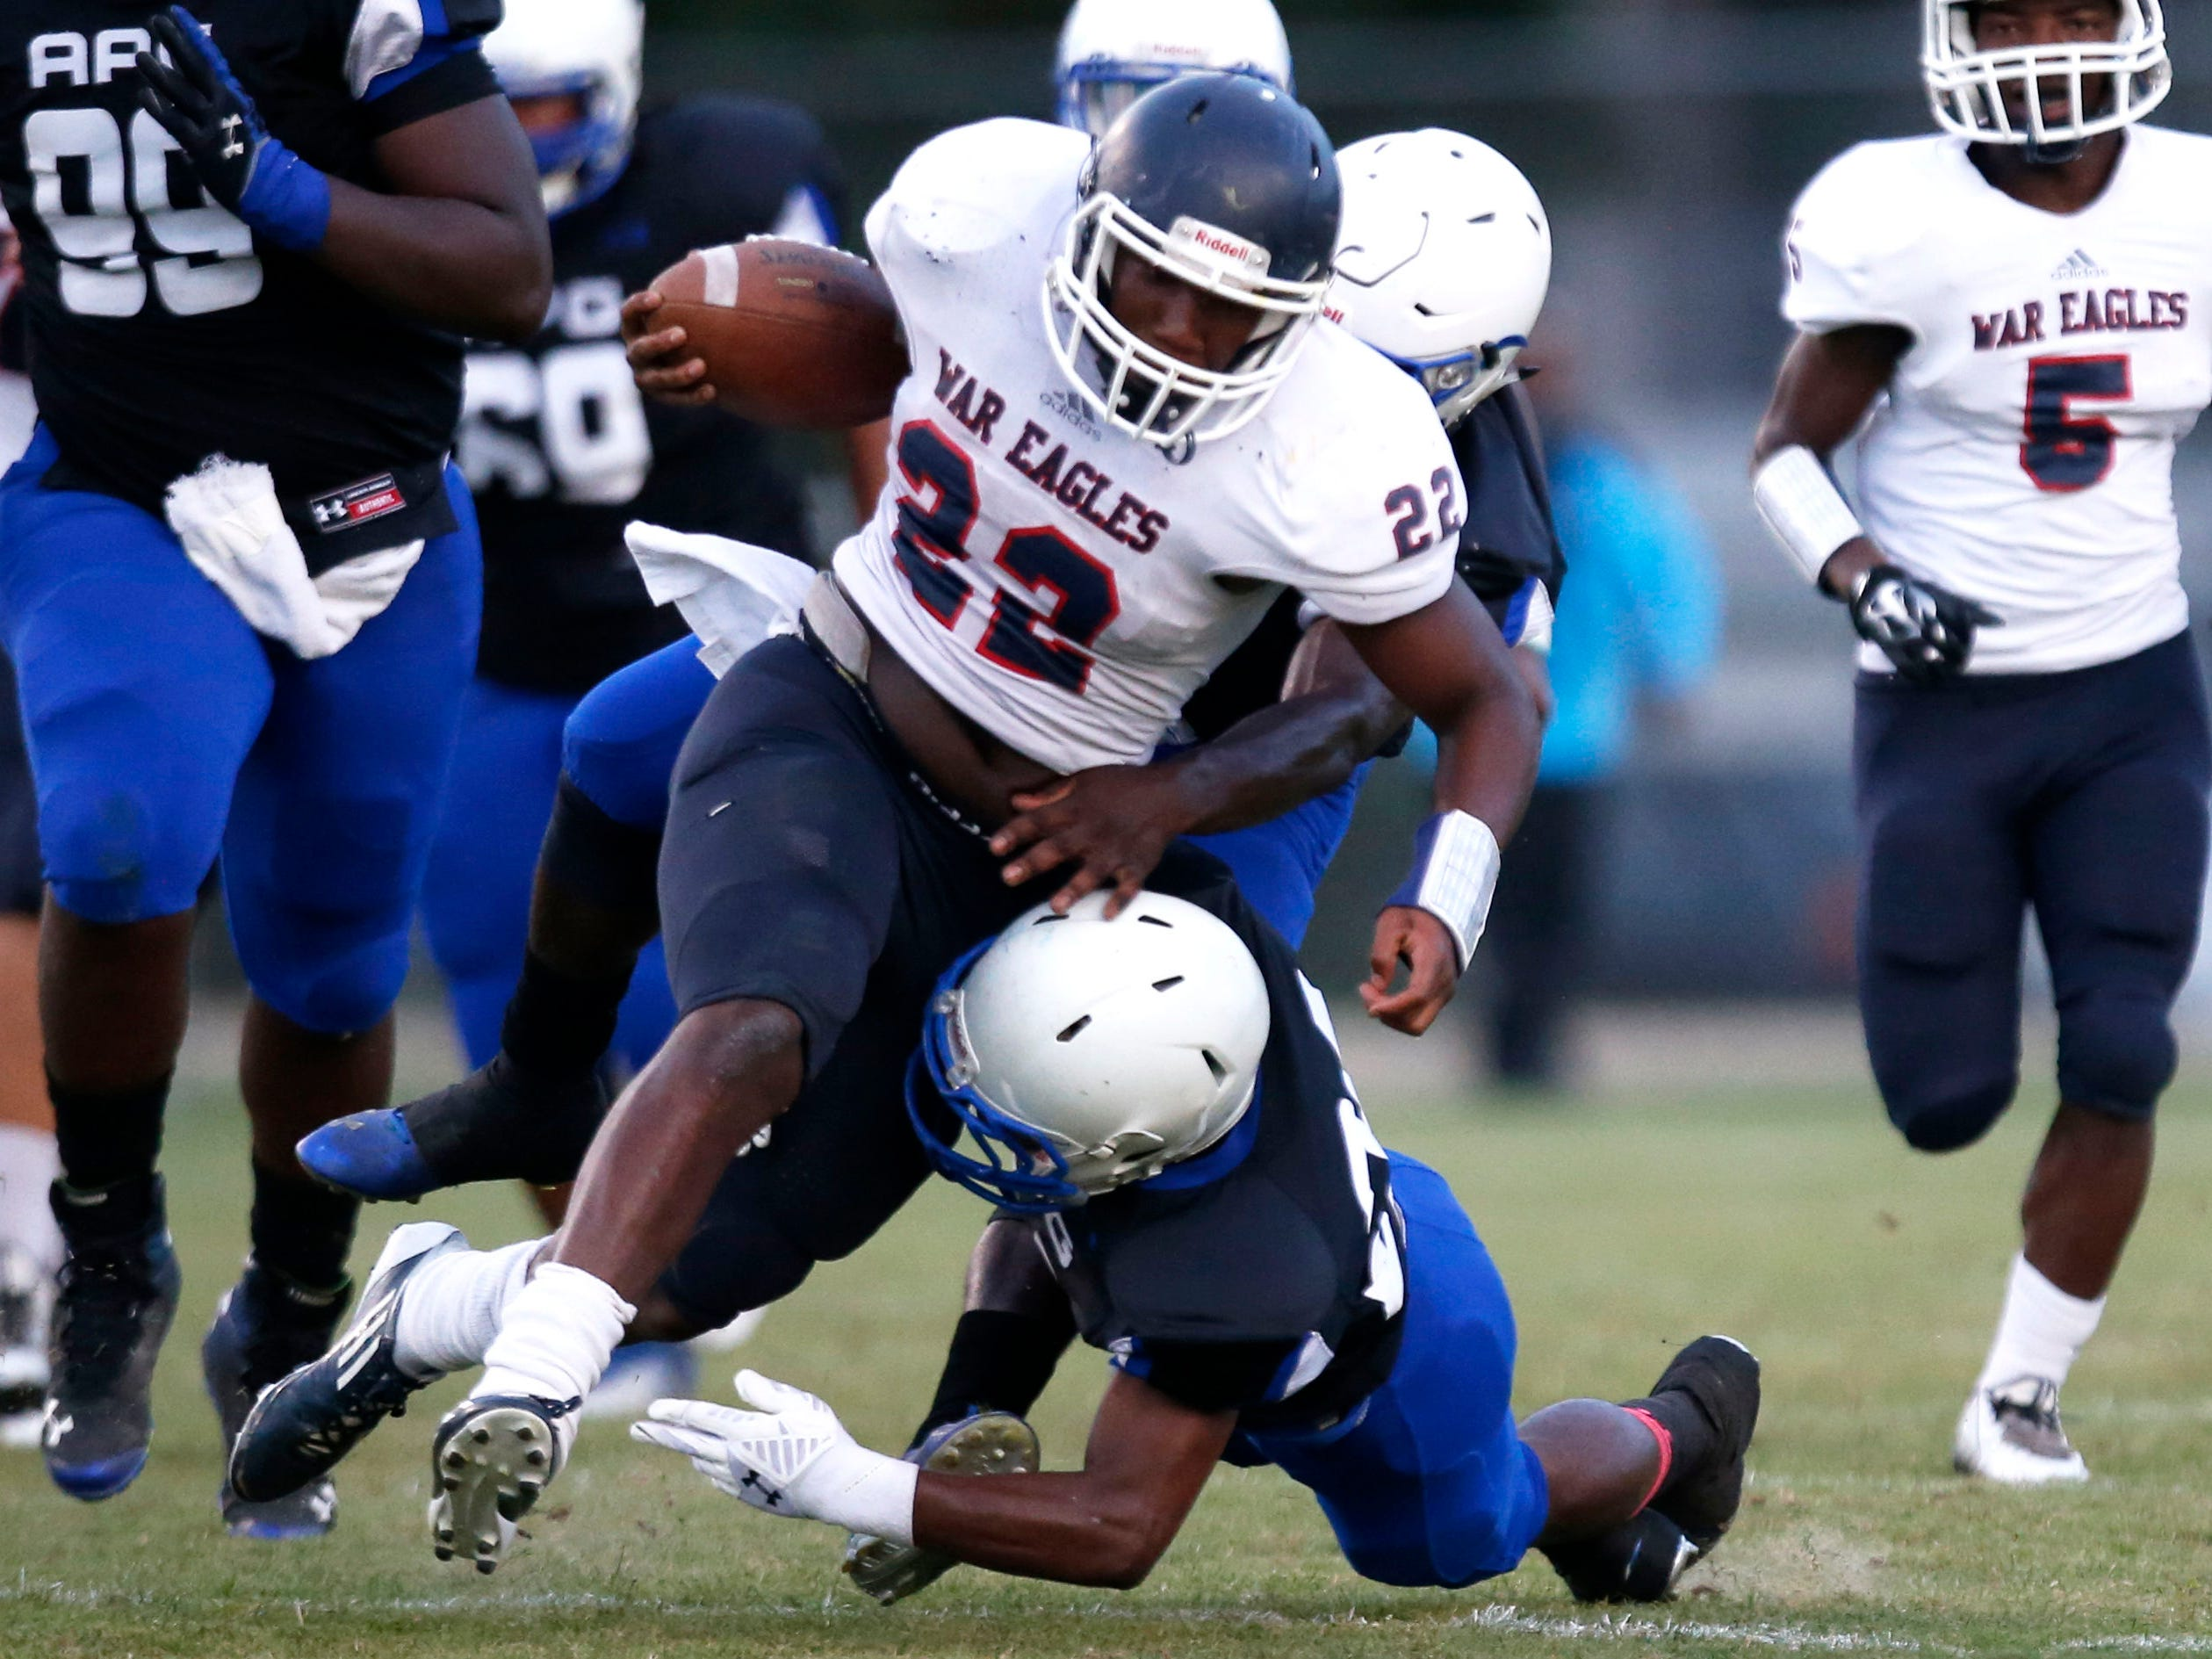 Wakulla's Monterious Loggins is brought down by Godby's BJ Grant, bottom, and Kani Daguerre during a jamboree at Gene Cox Stadium on Thursday.